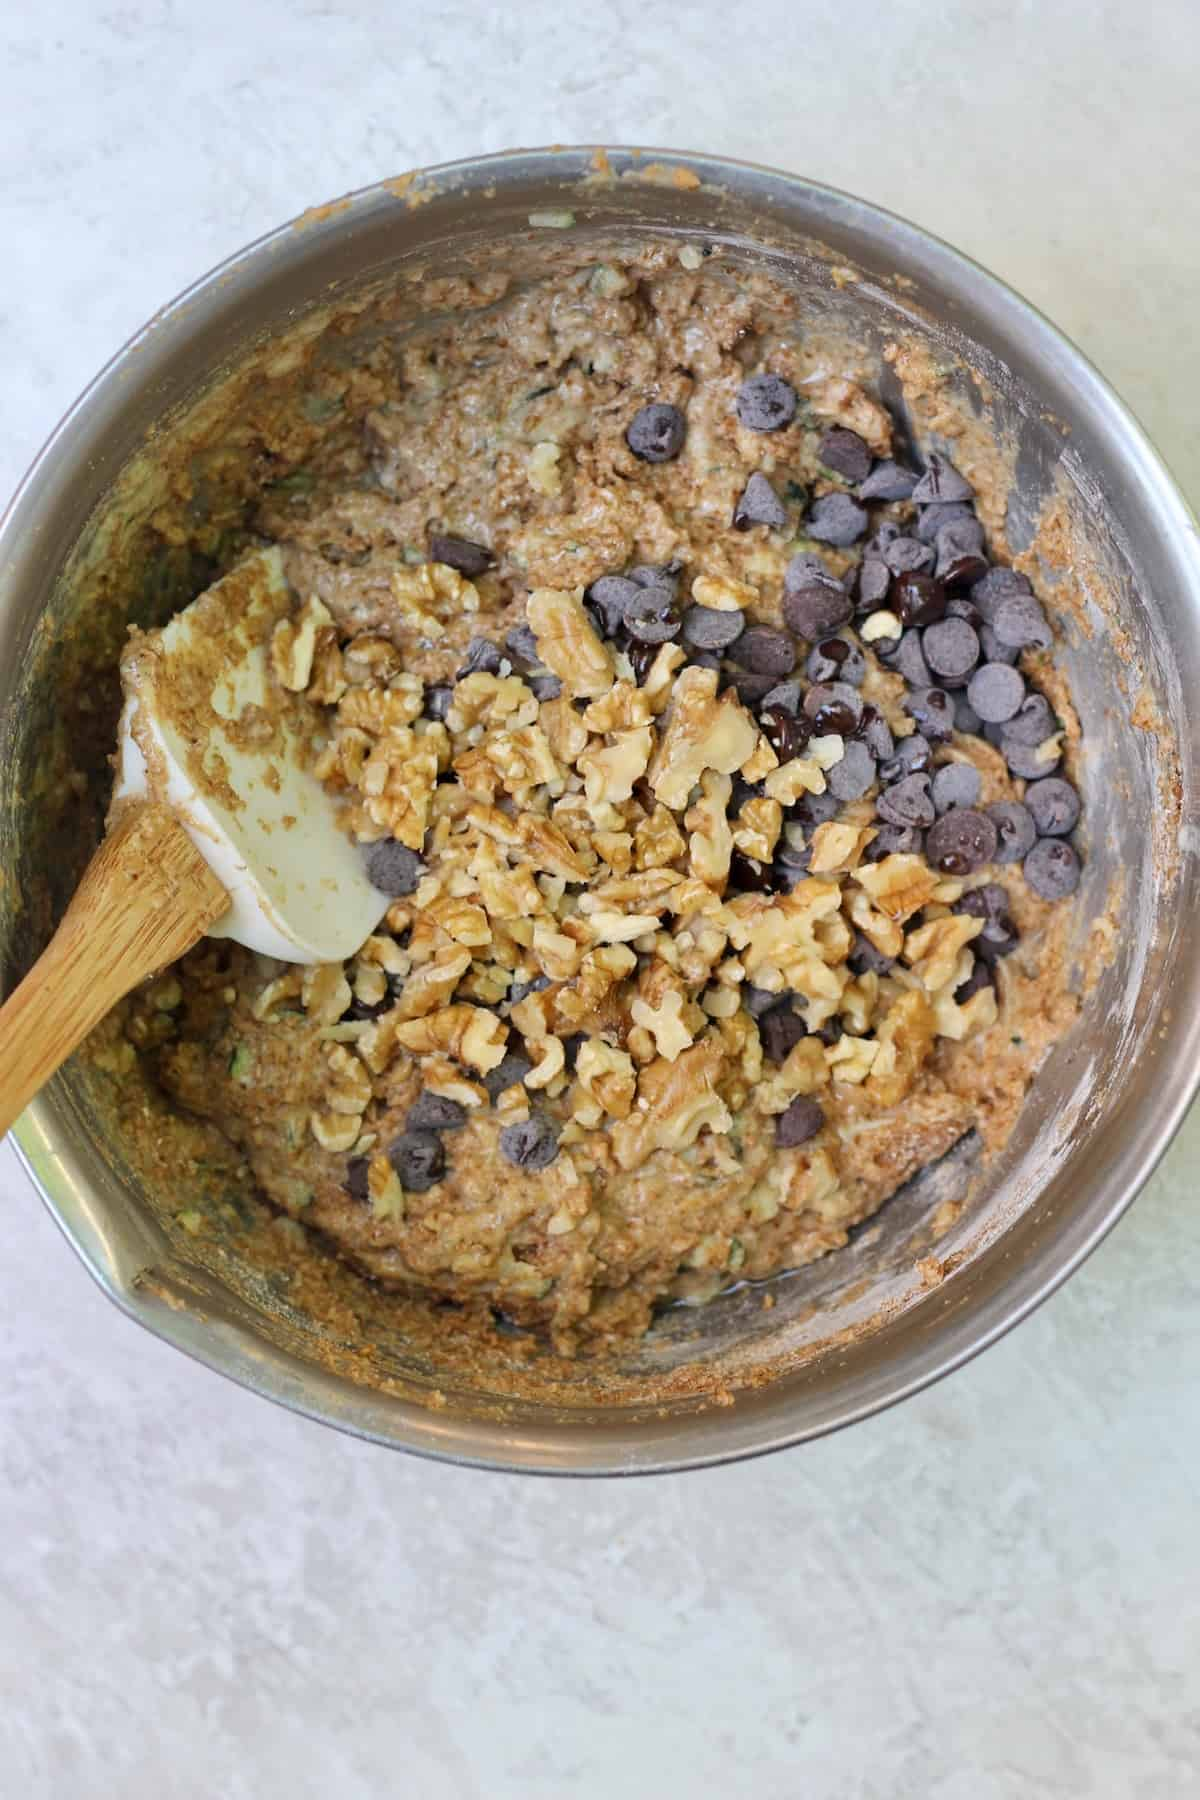 bowl of batter with walnuts and chocolate chips